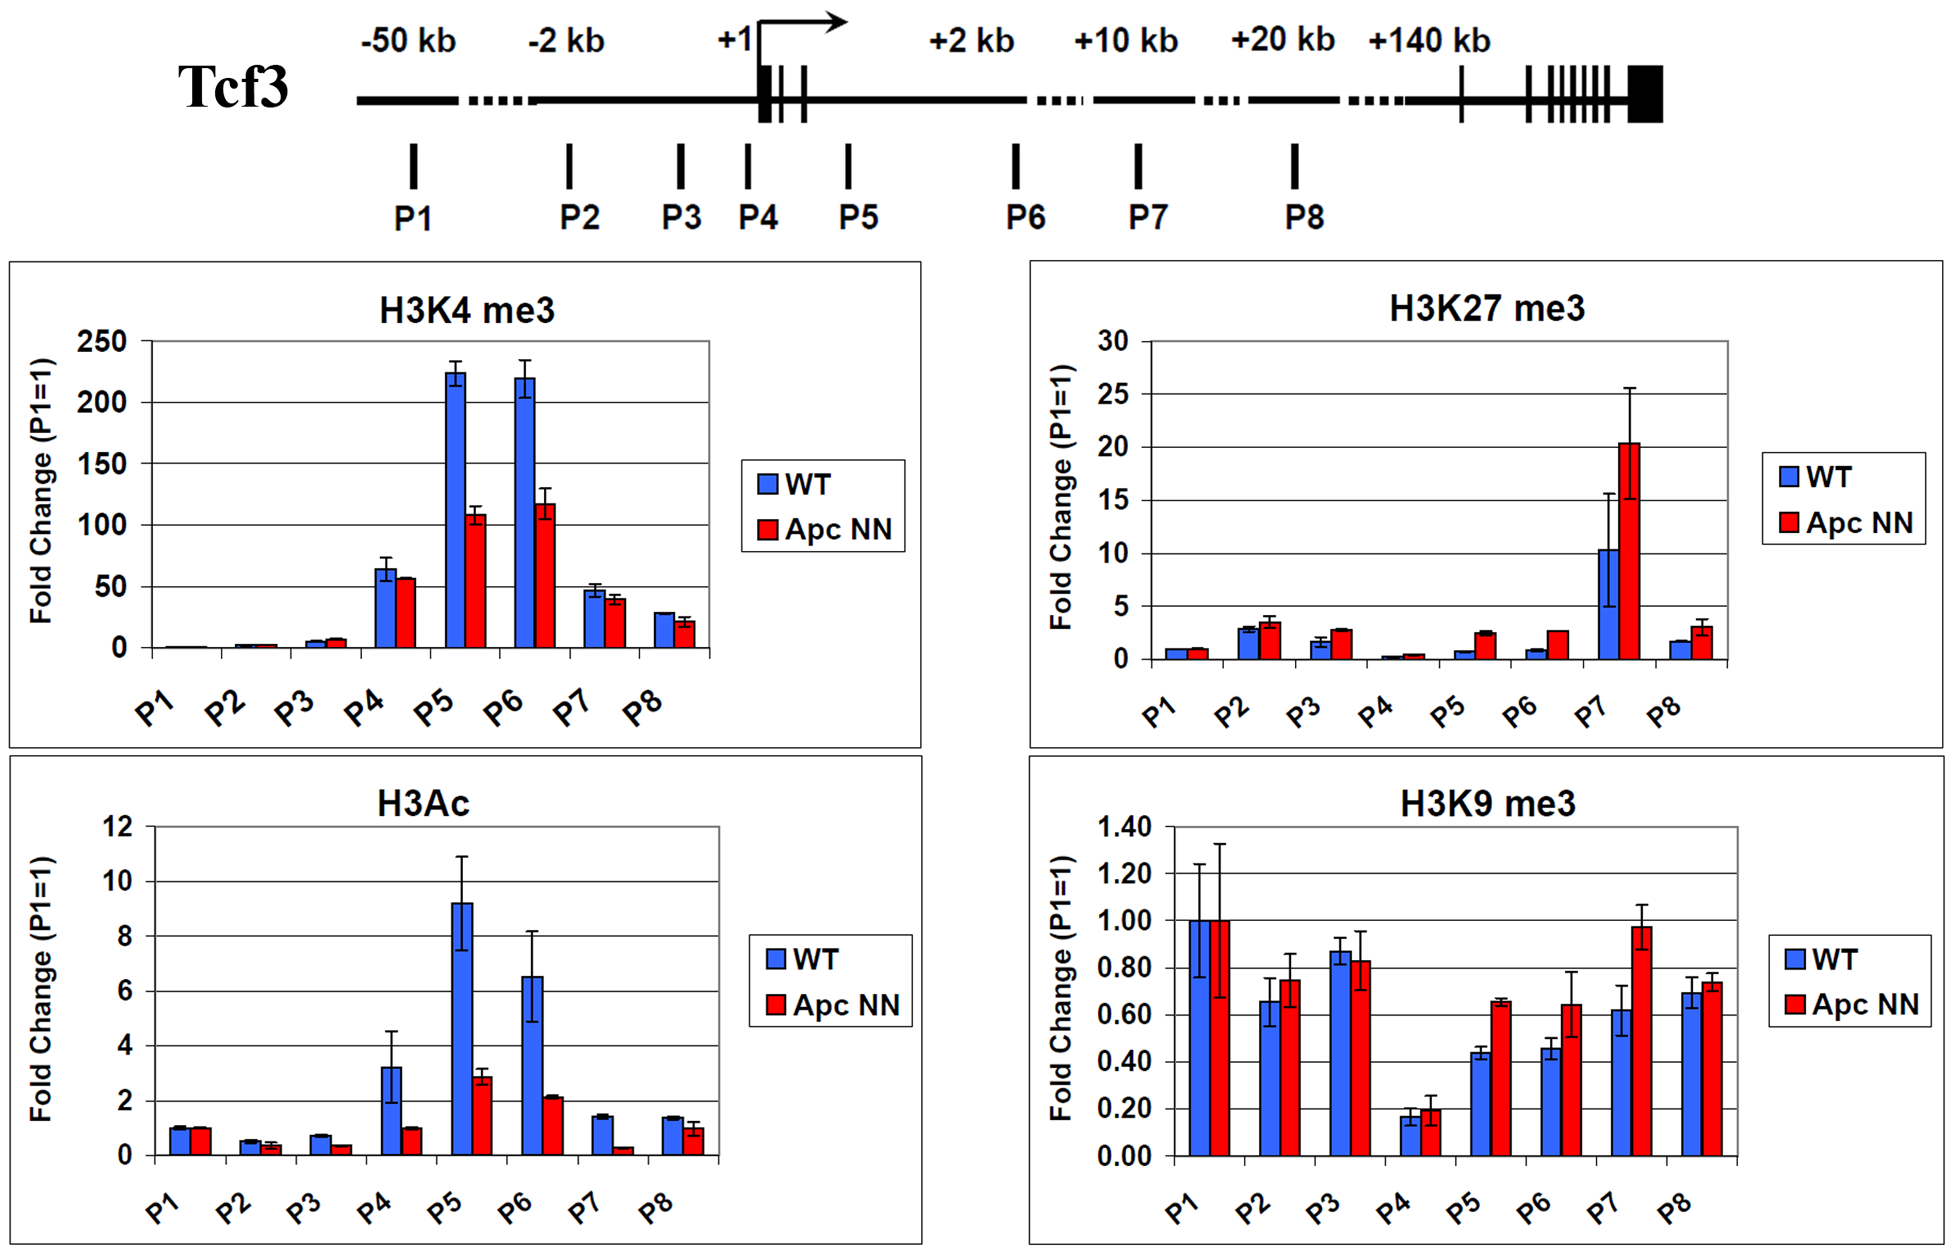 Regulation of Tcf3 in <i>Apc</i>NN ESCs is associated with histone modifications.